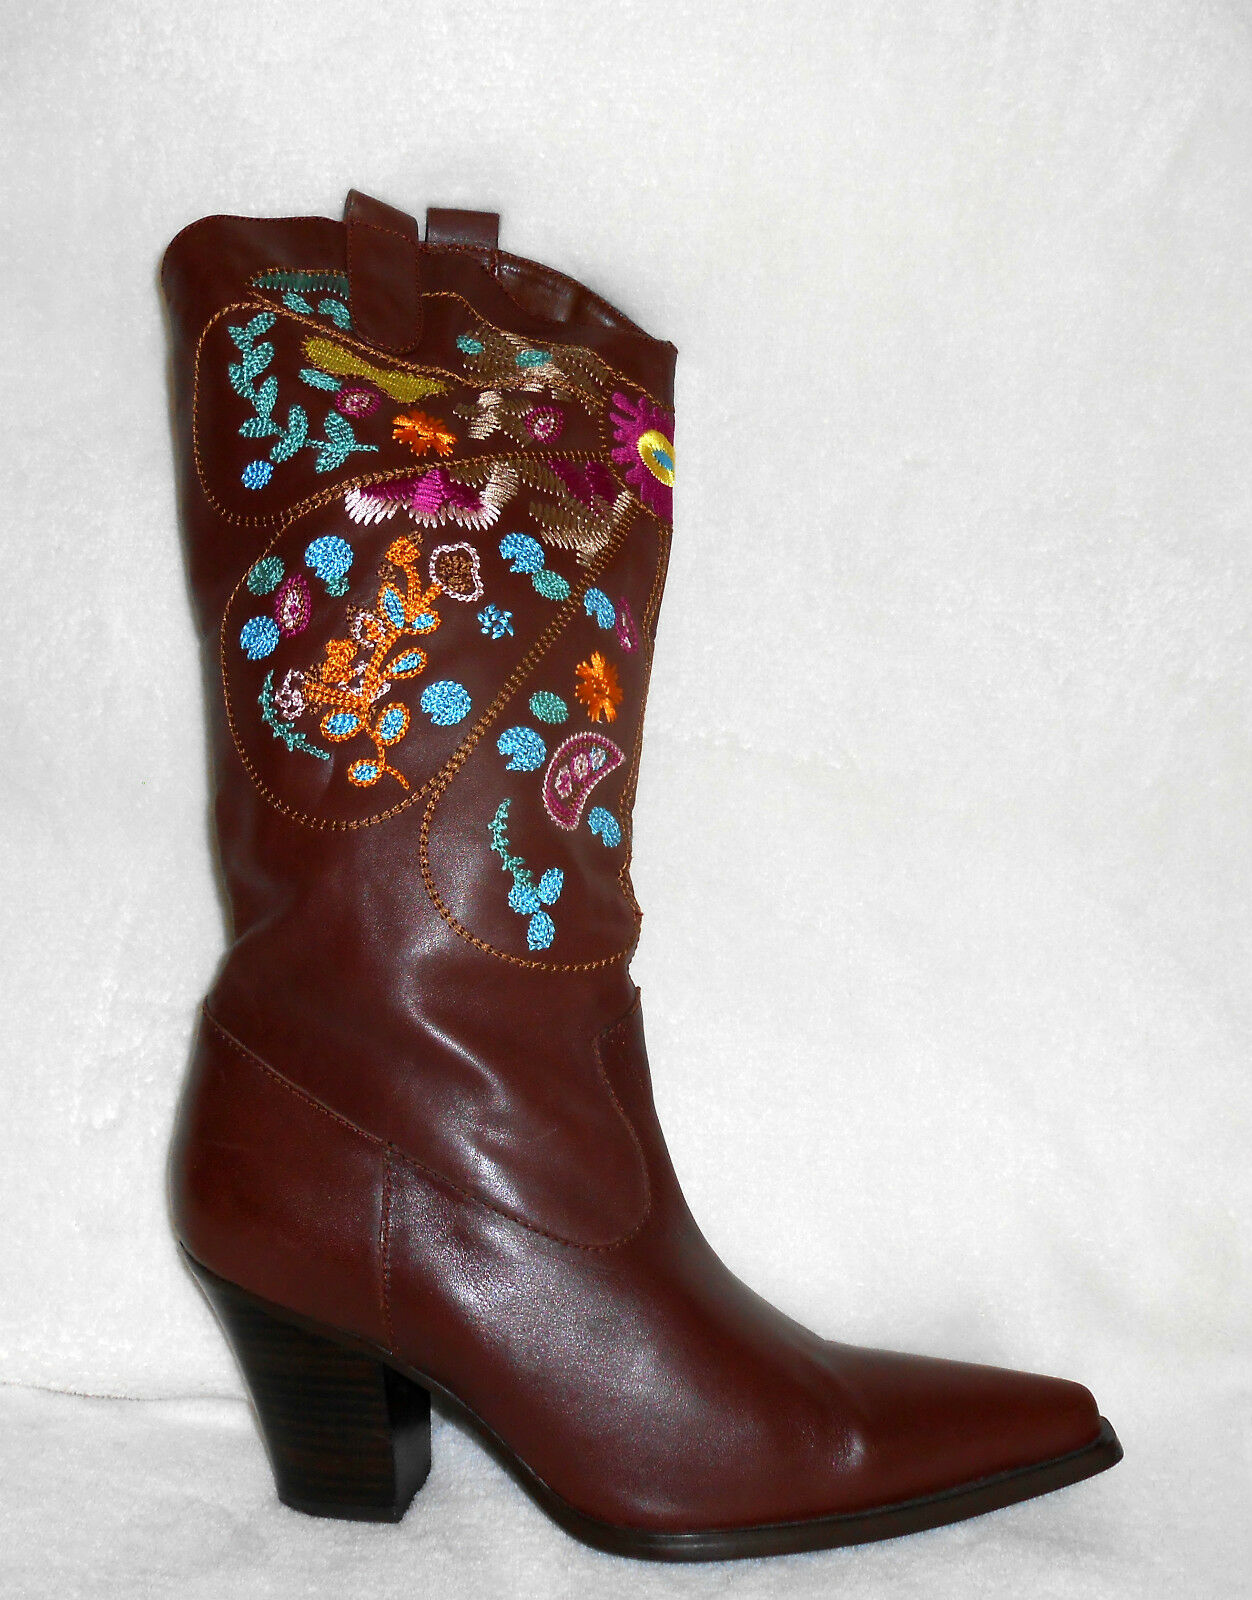 TWO LIPS BROWN LEATHER KNEE HIGH MULTI-colorD EMBROIDERED BOOTS, SZ 9, NICE